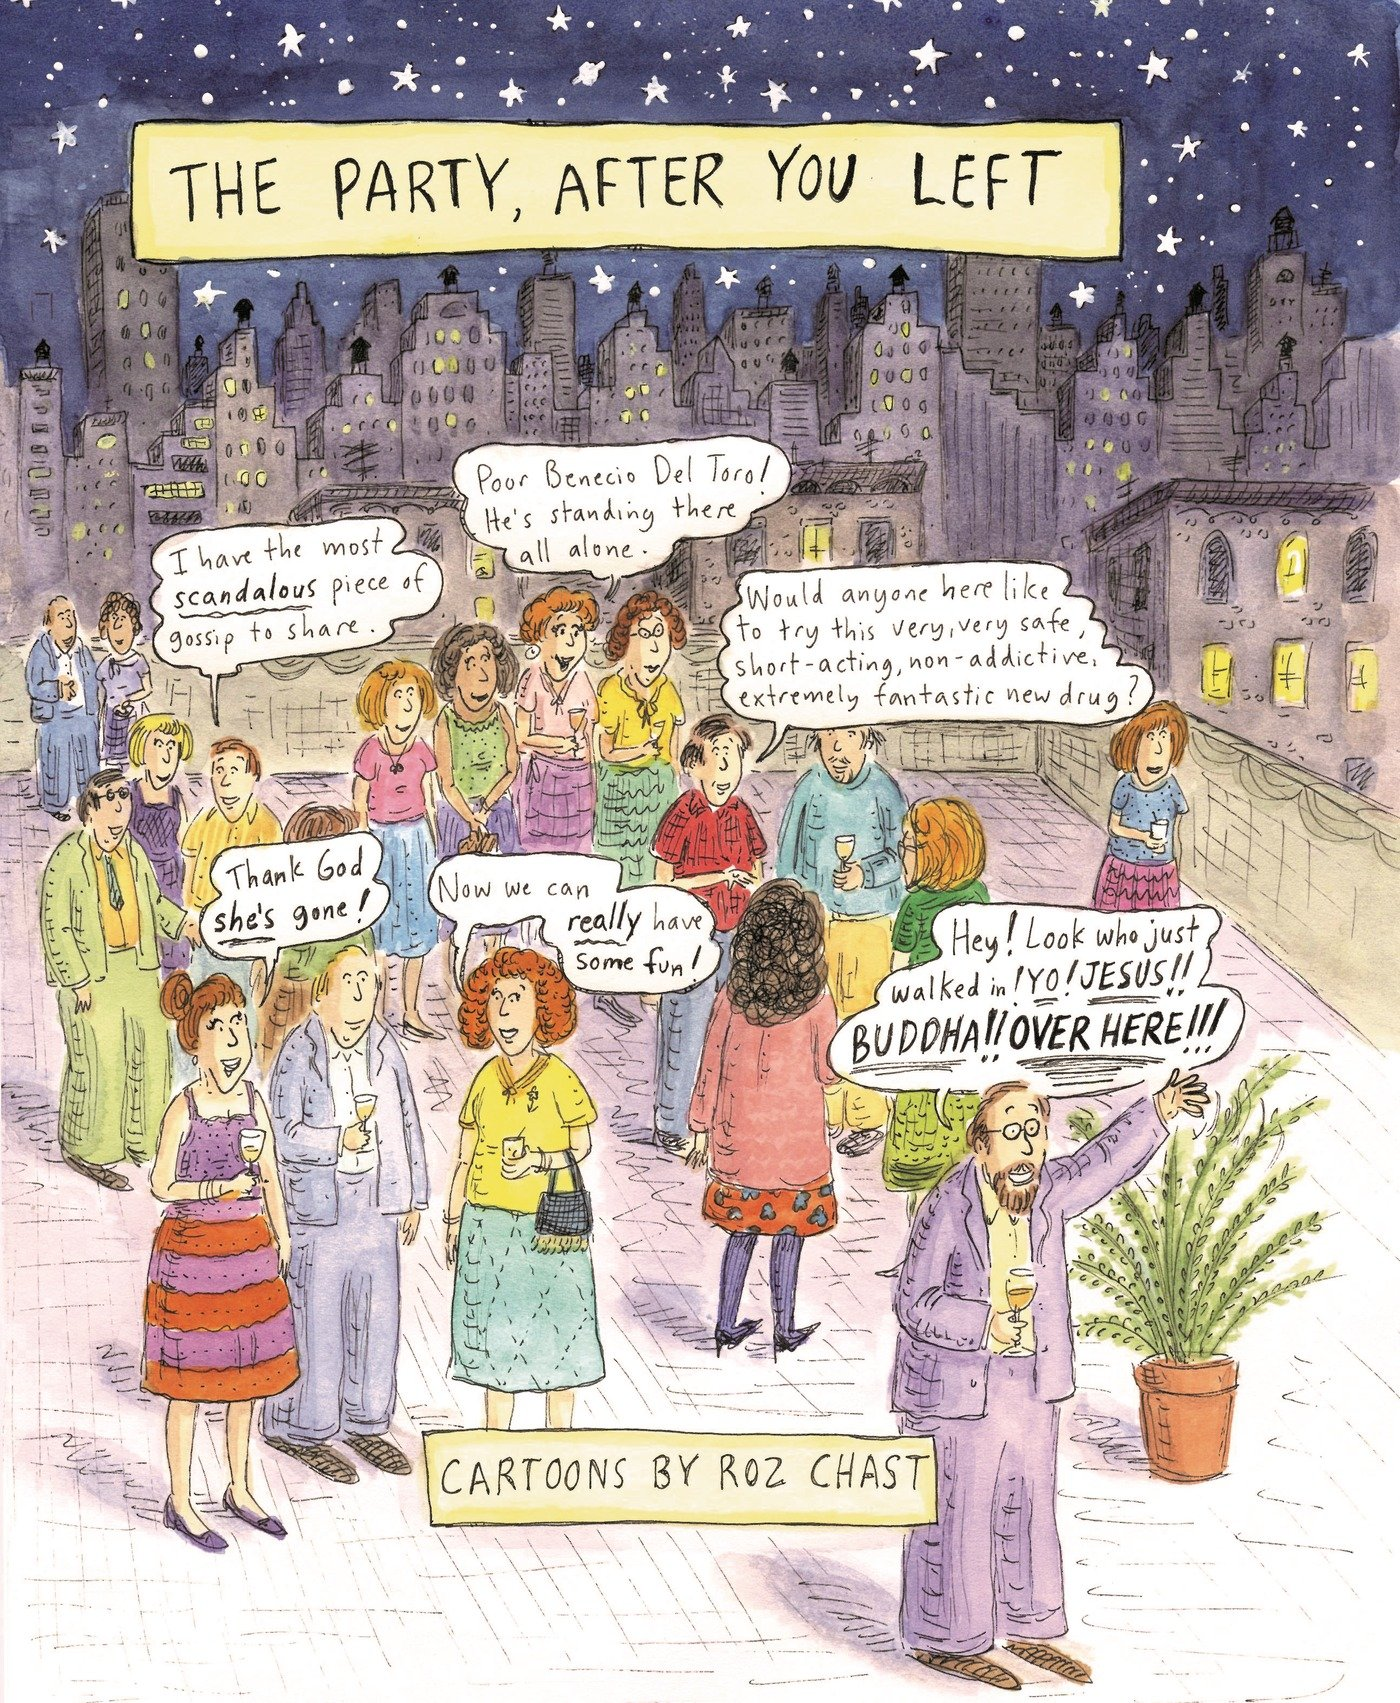 The Party, After you Left - see what you miss out on.